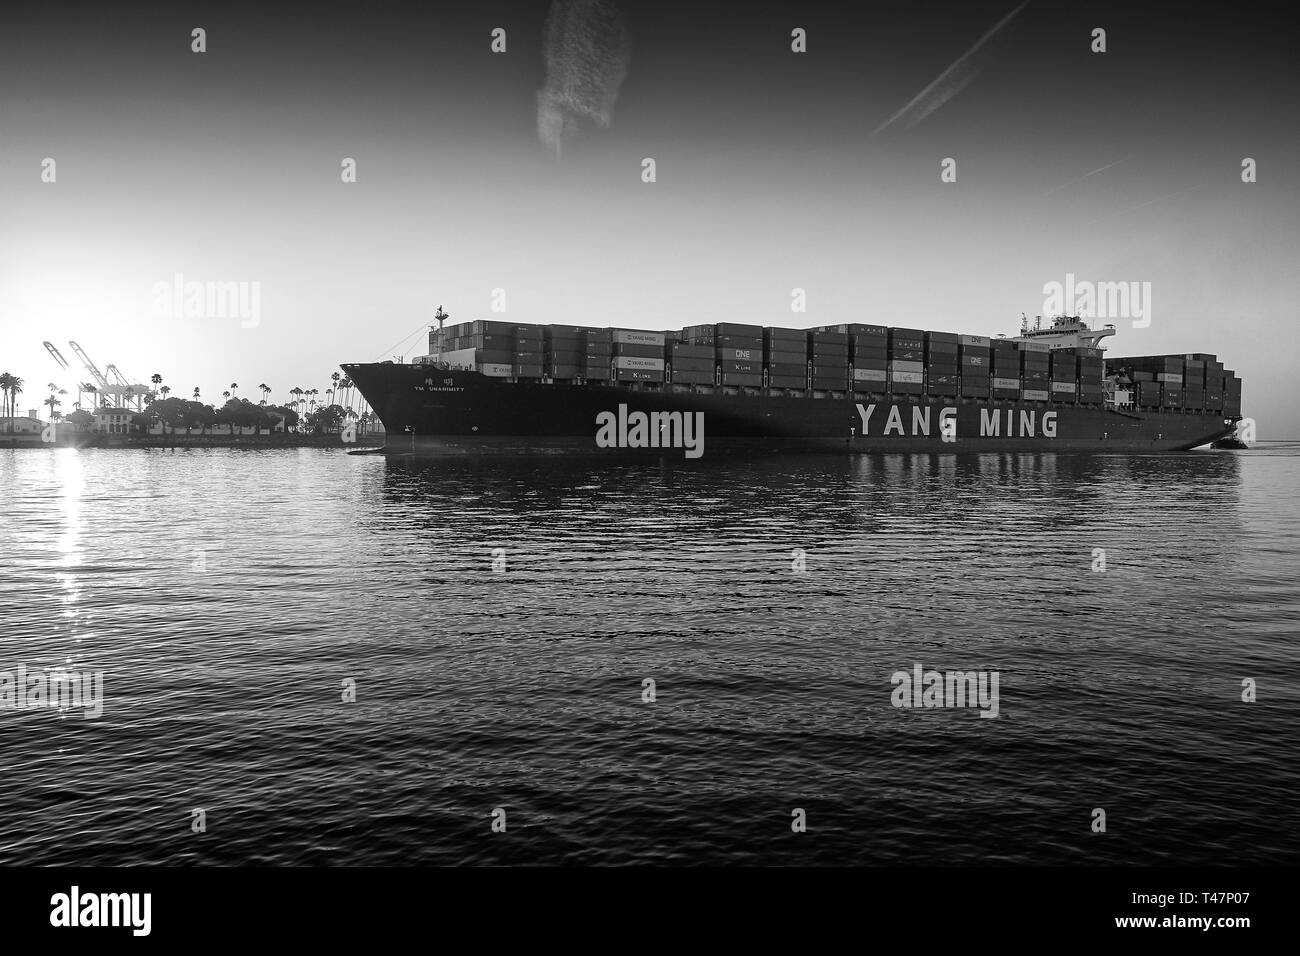 The Giant YANG MING Container Ship, YM UNANIMITY, Enters The Los Angeles Main Channel, Bound For The Port Of Los Angeles, California, USA. - Stock Image